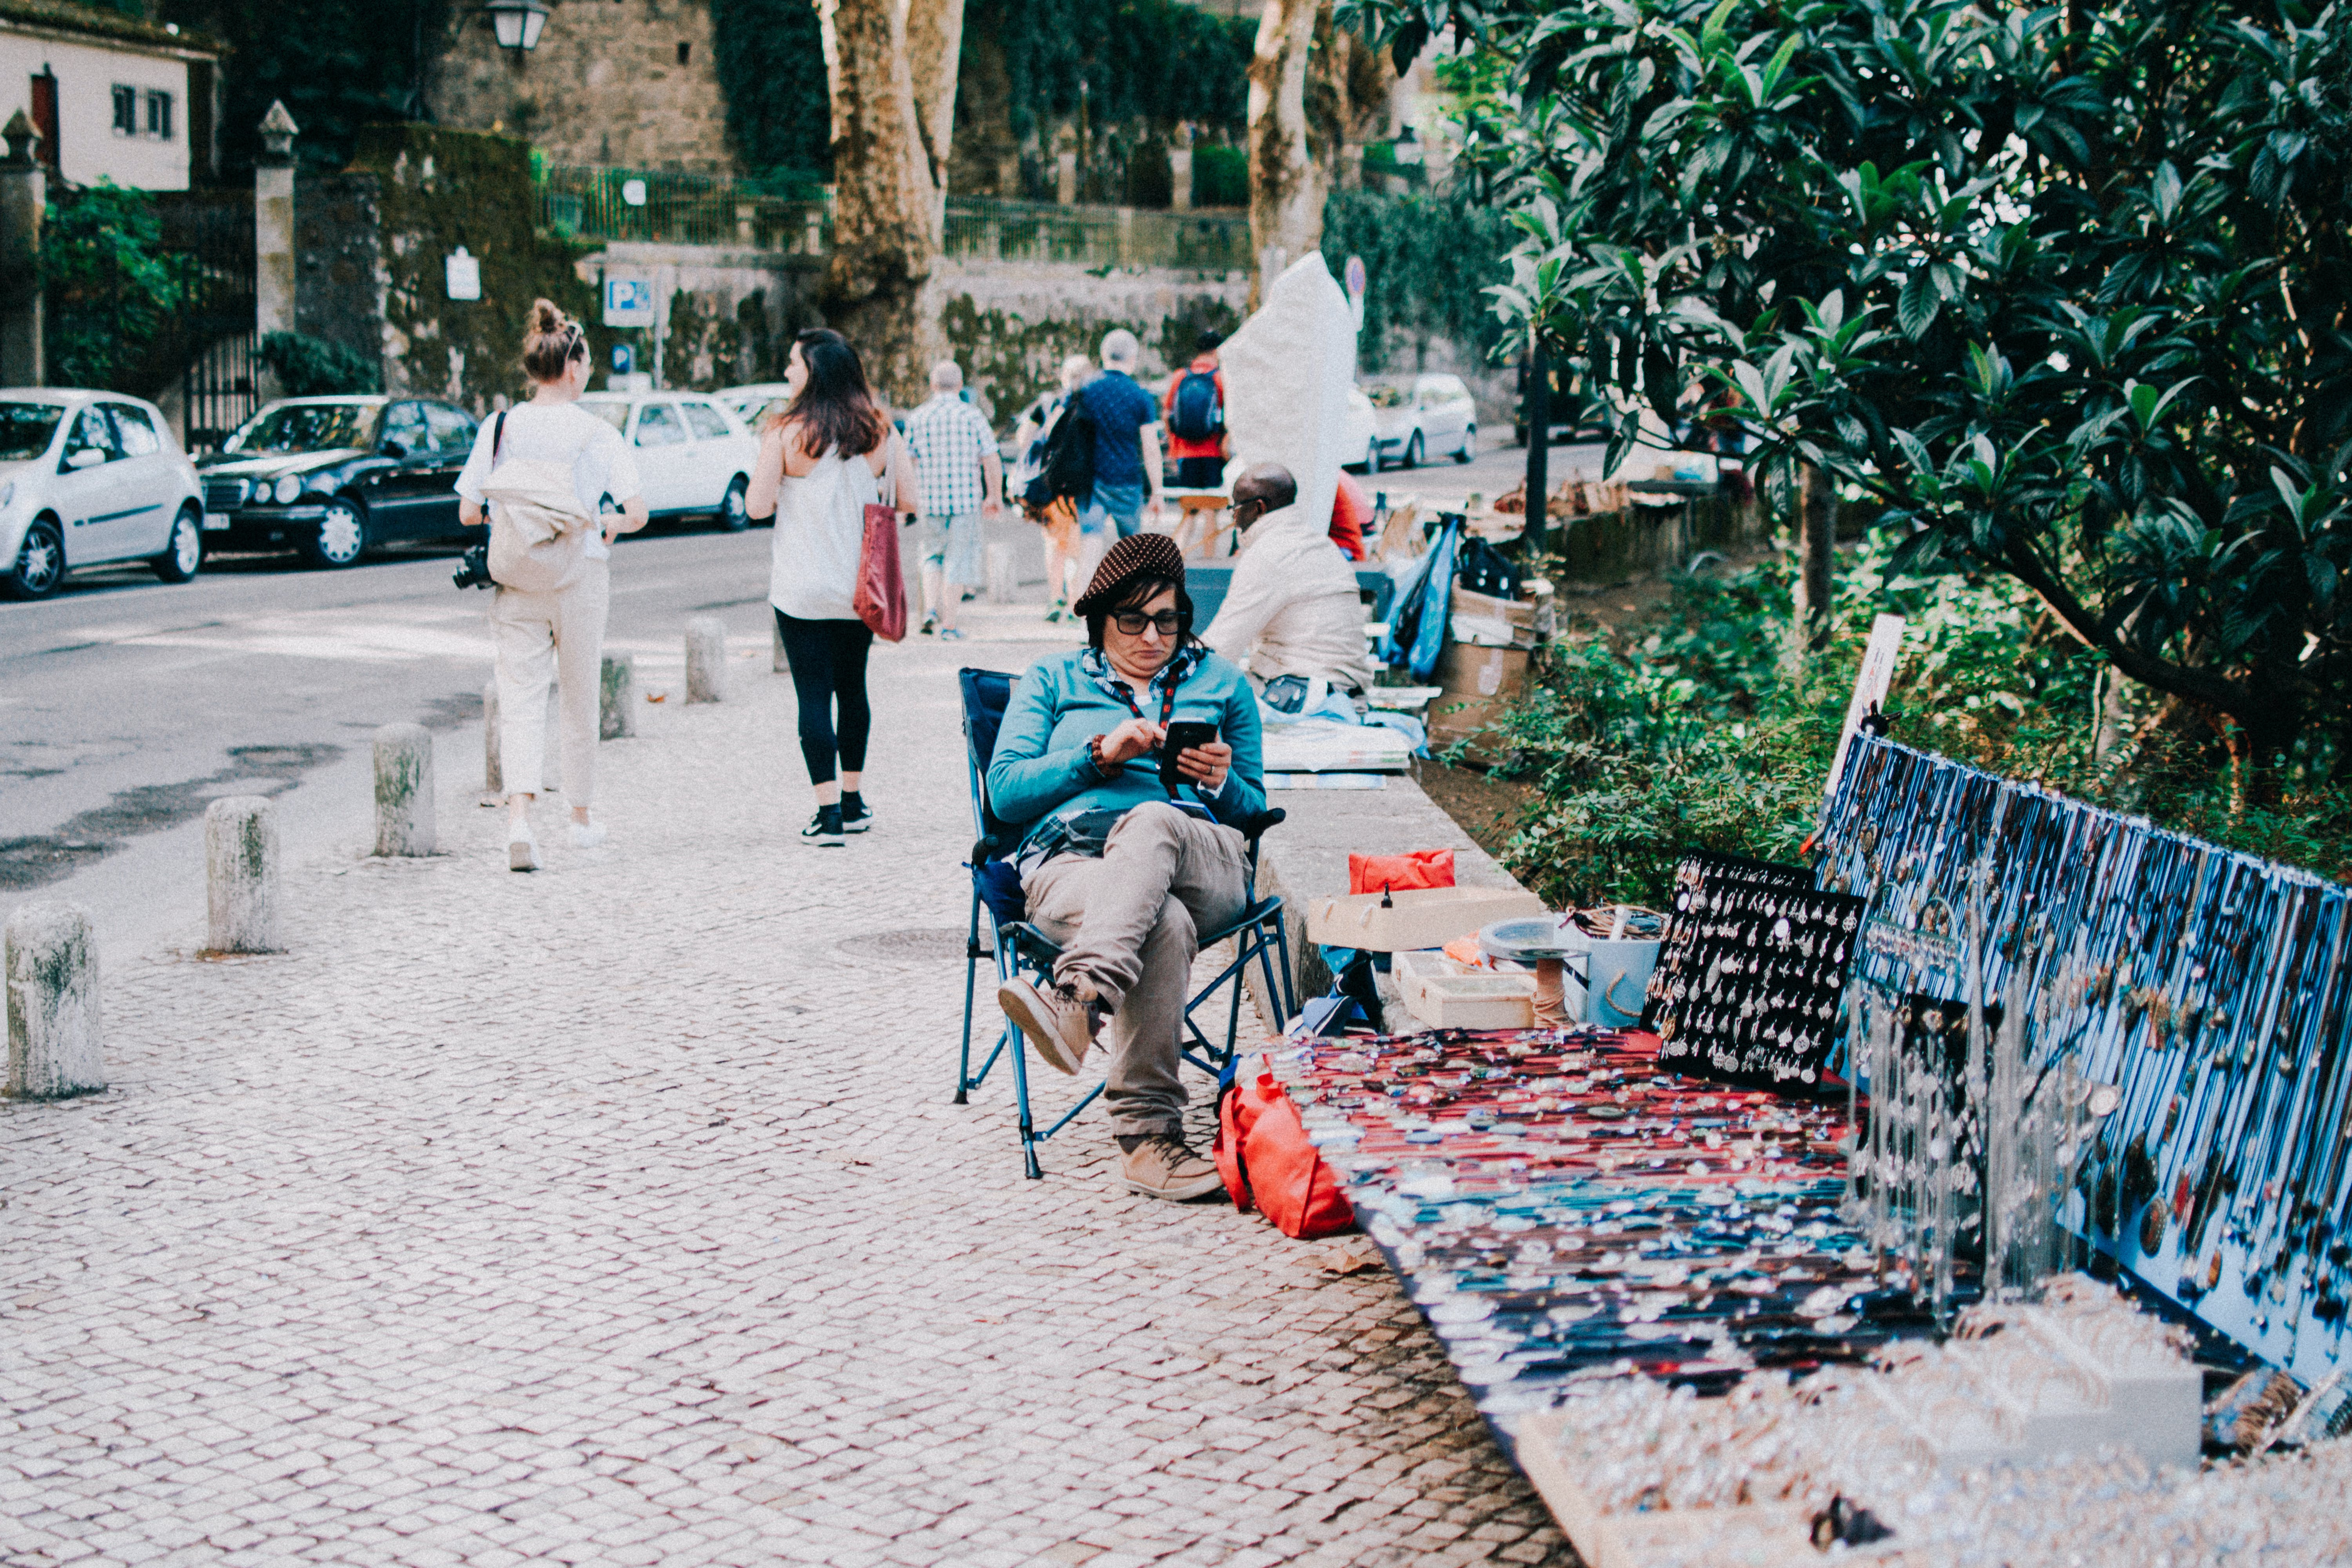 Person Sitting on Camping Chair Near Displayed Products